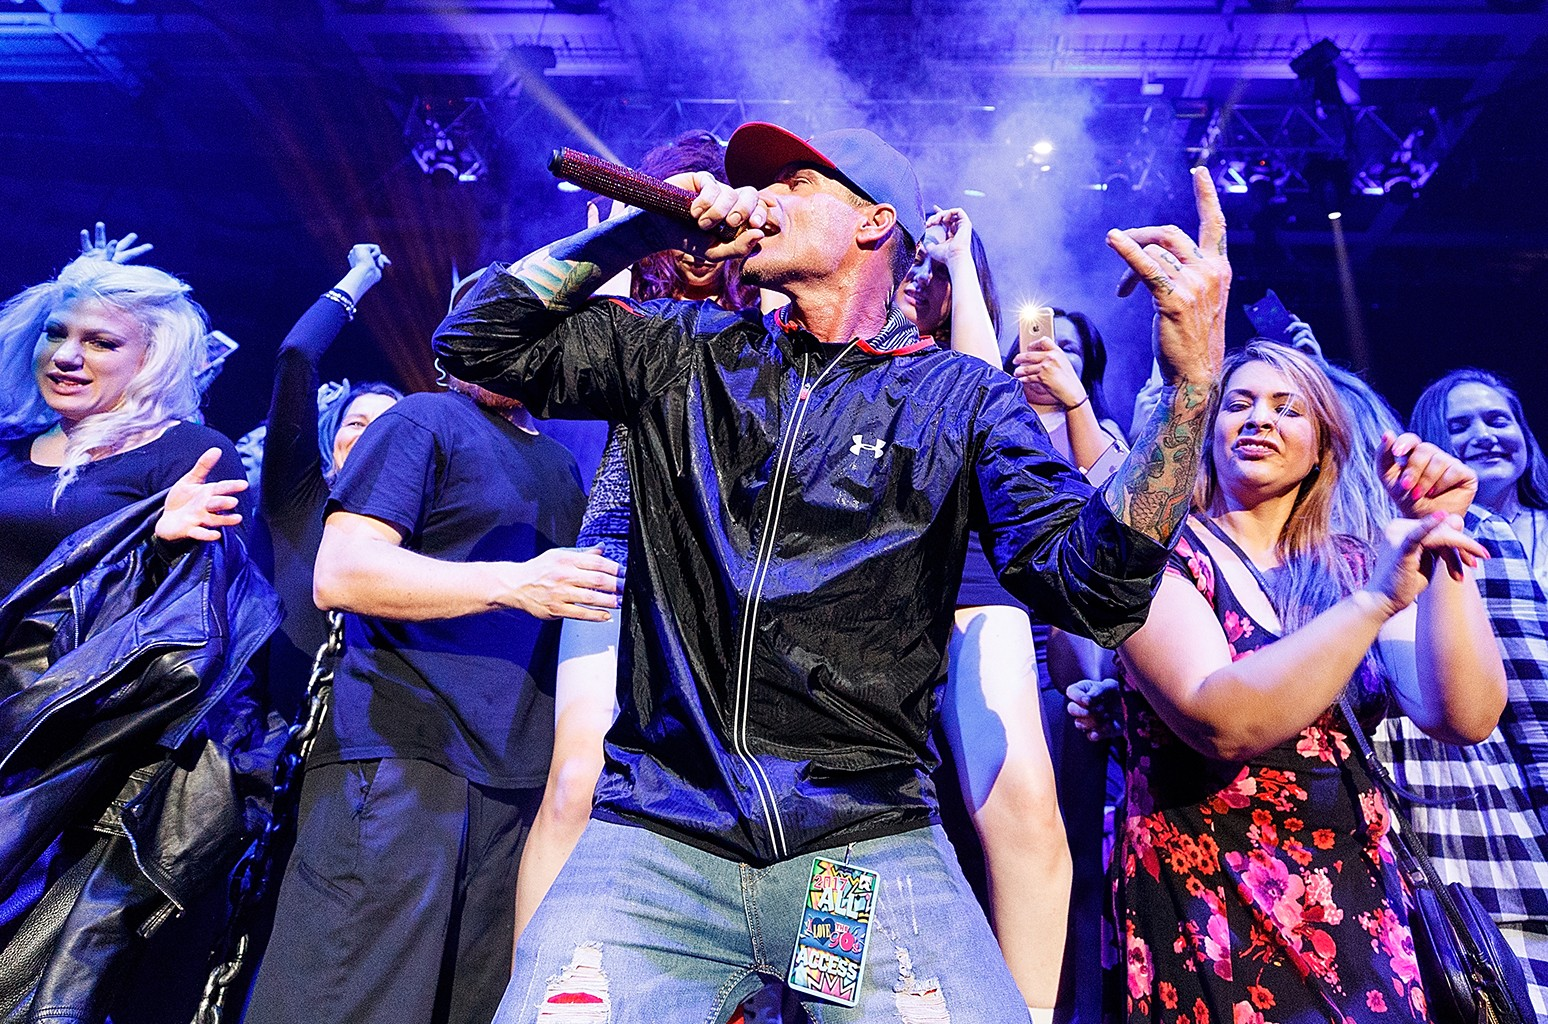 Vanilla Ice performs on stage during the 'I Love The 90's Tour' at Abbotsford Centre on April 22, 2017 in Abbotsford, Canada.  (Photo by Andrew Chin/Getty Images)